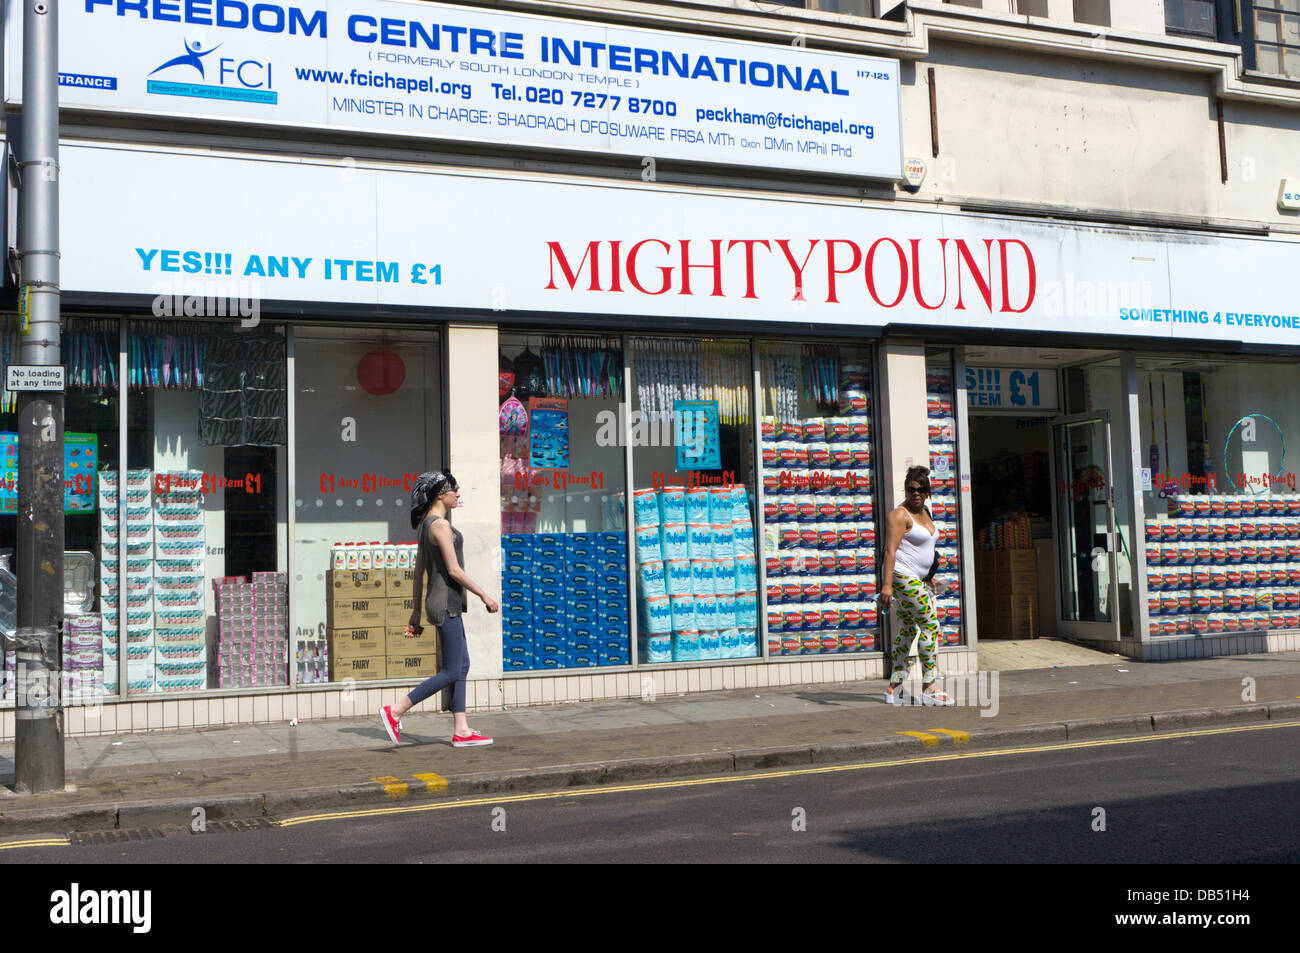 Mighty Pound discount shop in Rye Lane, Peckham. - Stock Image